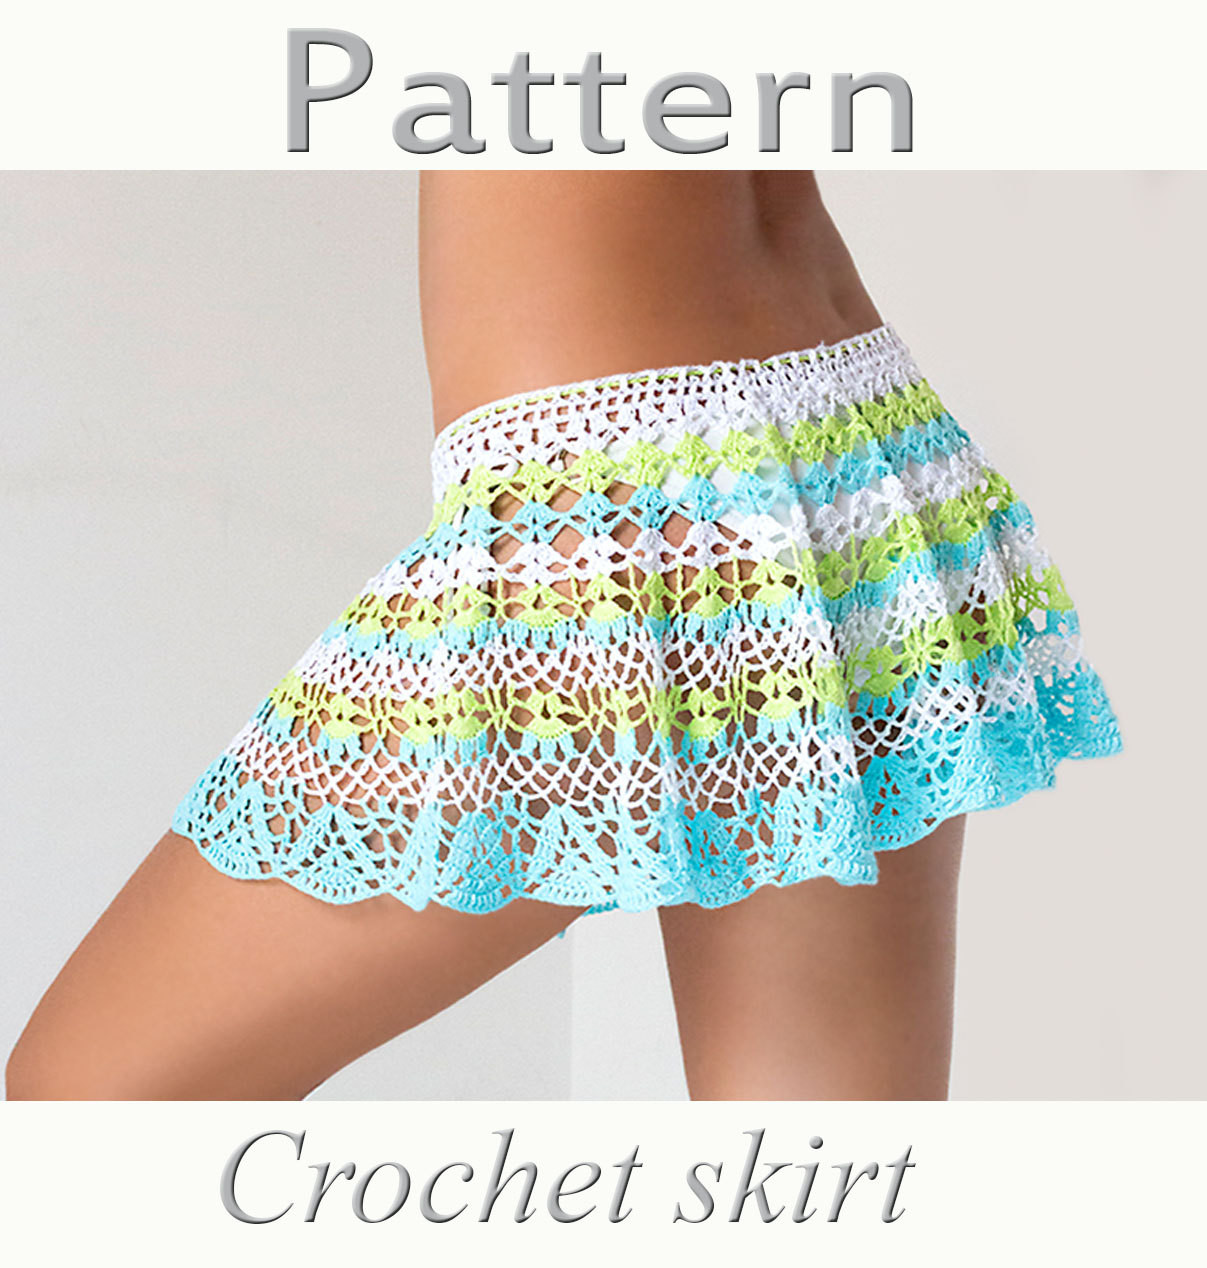 Crochet Skirt Patterns Awesome Crochet Beach Skirt Pattern Pdf Crochet Cover Up Of Fresh 47 Ideas Crochet Skirt Patterns